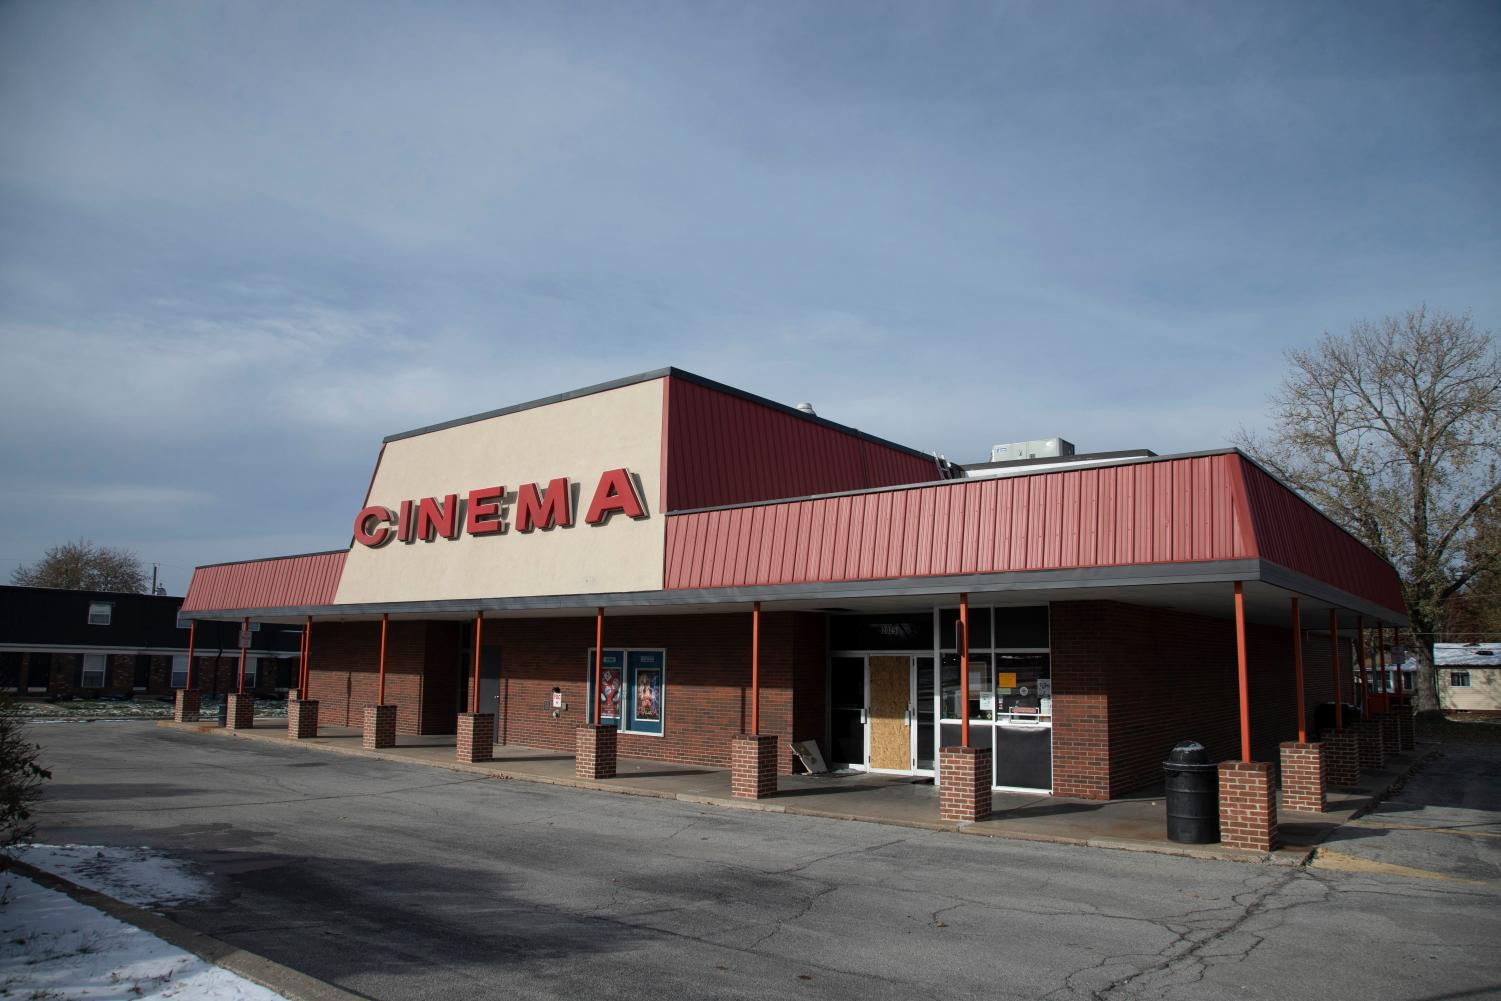 St. Andrews Cinema has been closed since a fire accident occurred in October.